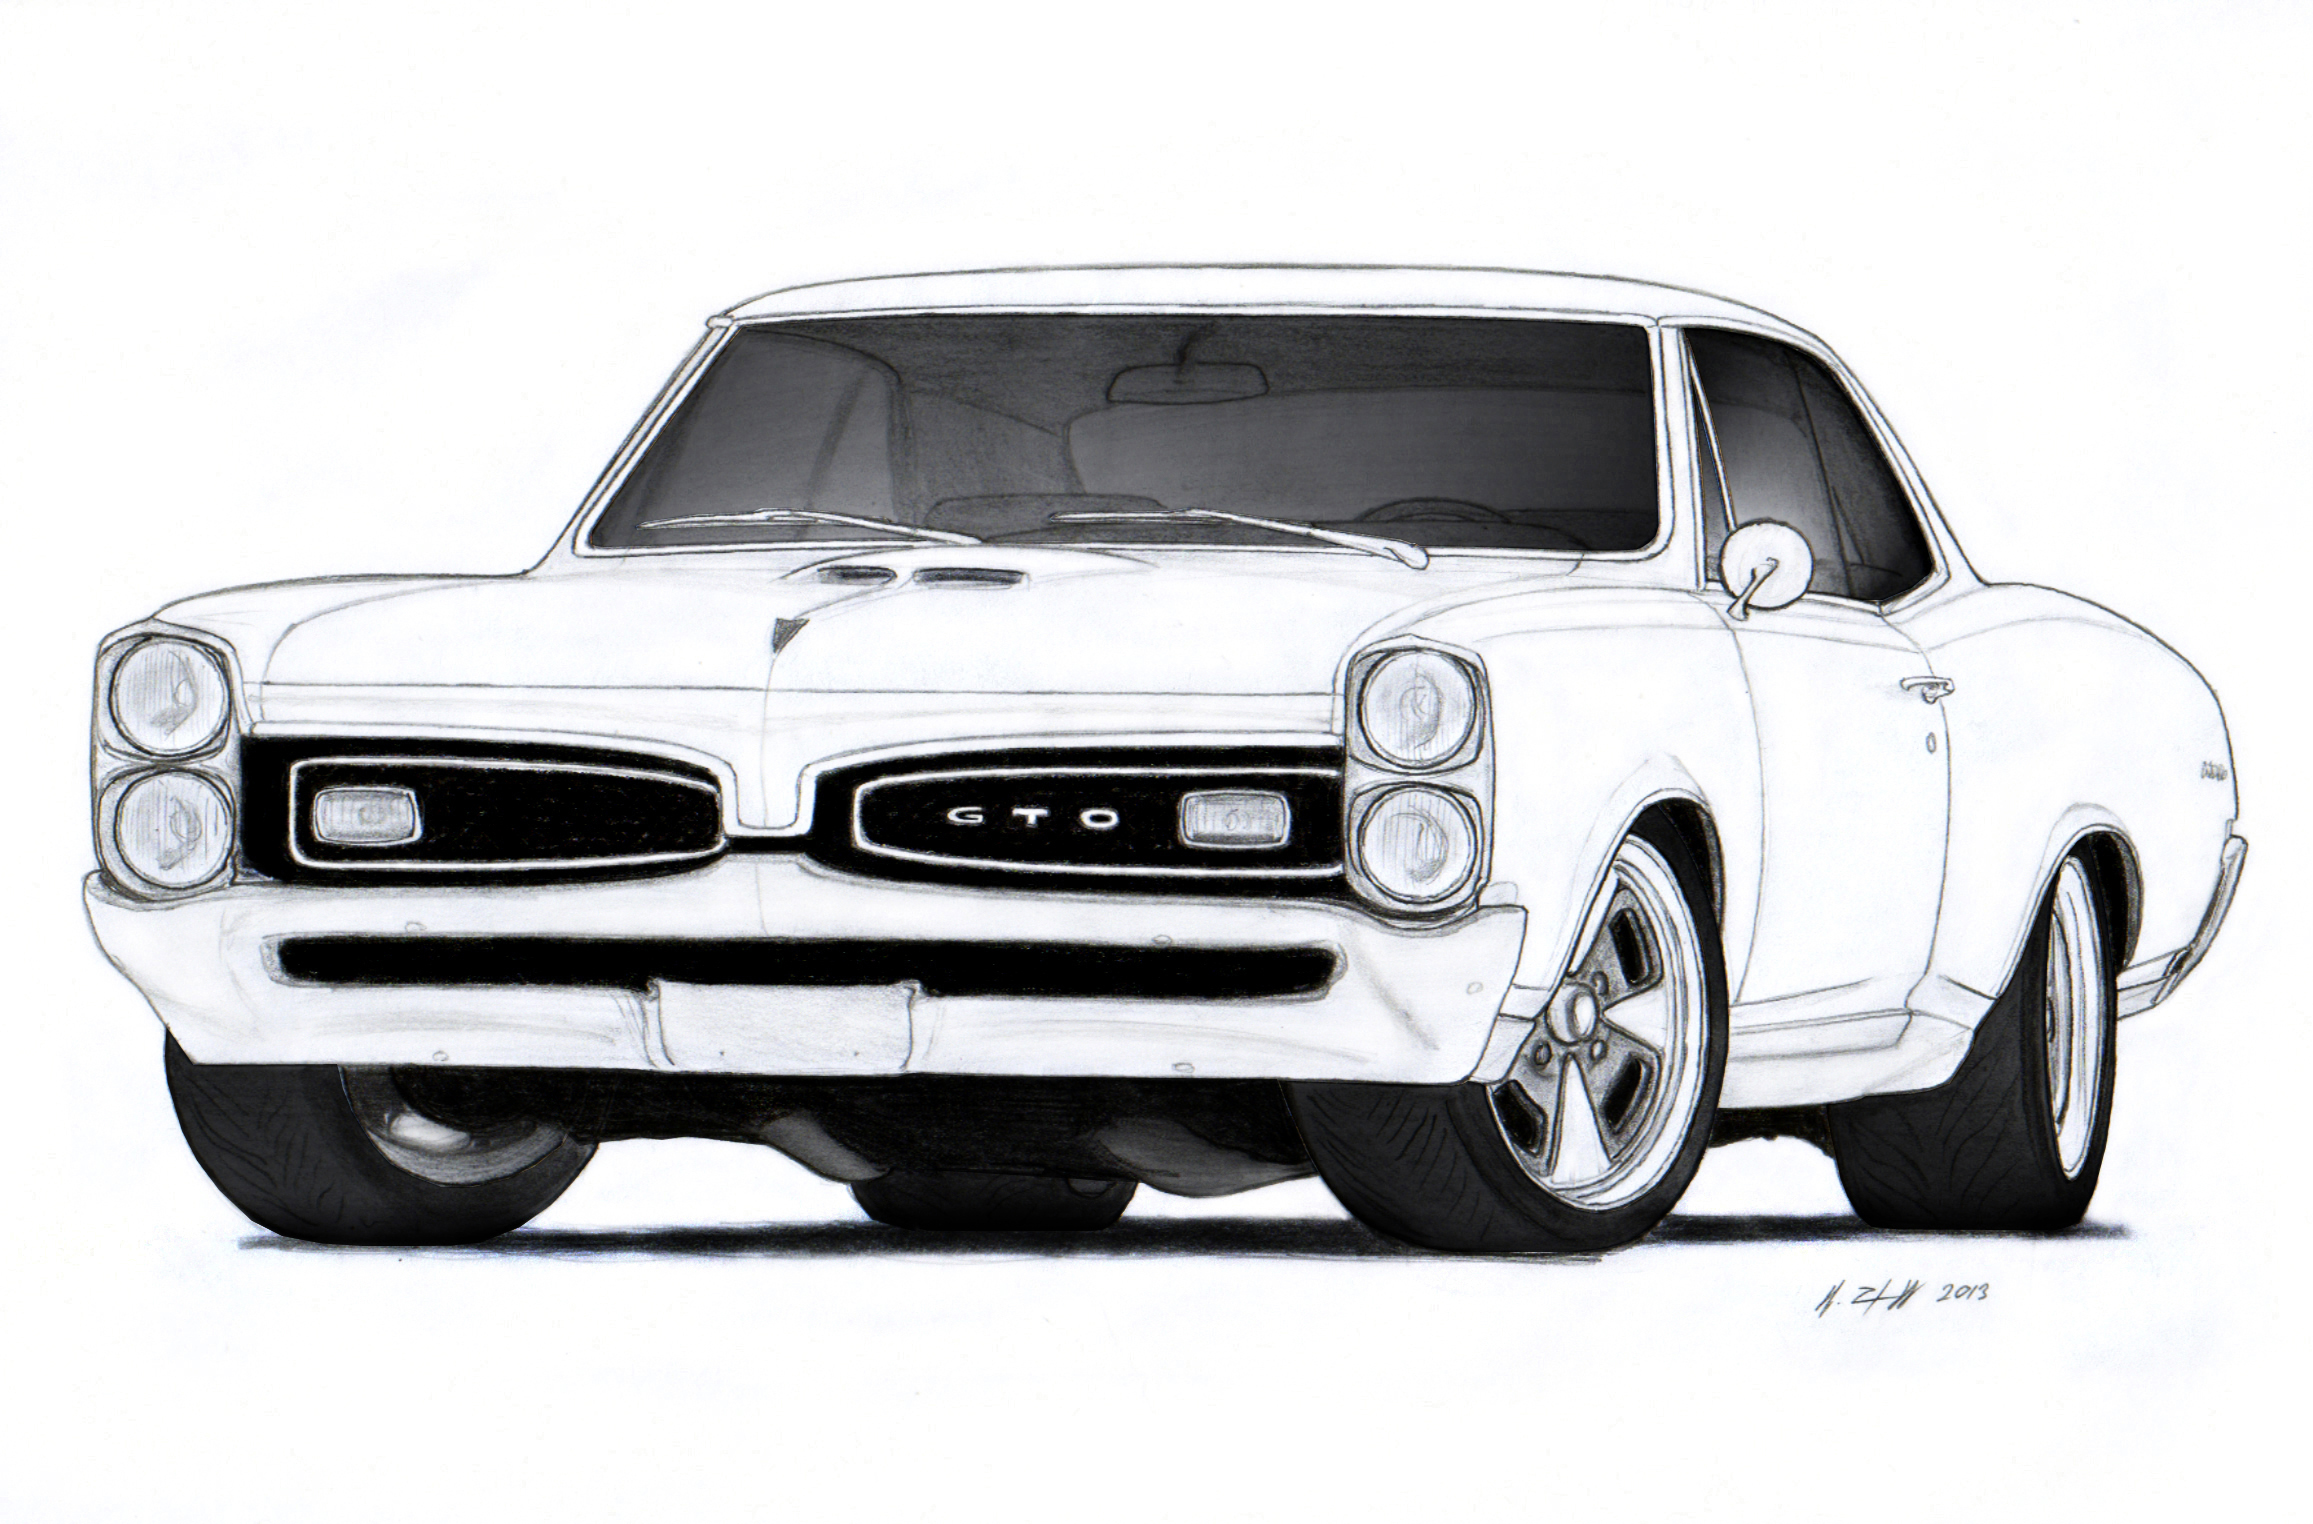 1967 Pontiac GTO Drawing by Vertualissimo